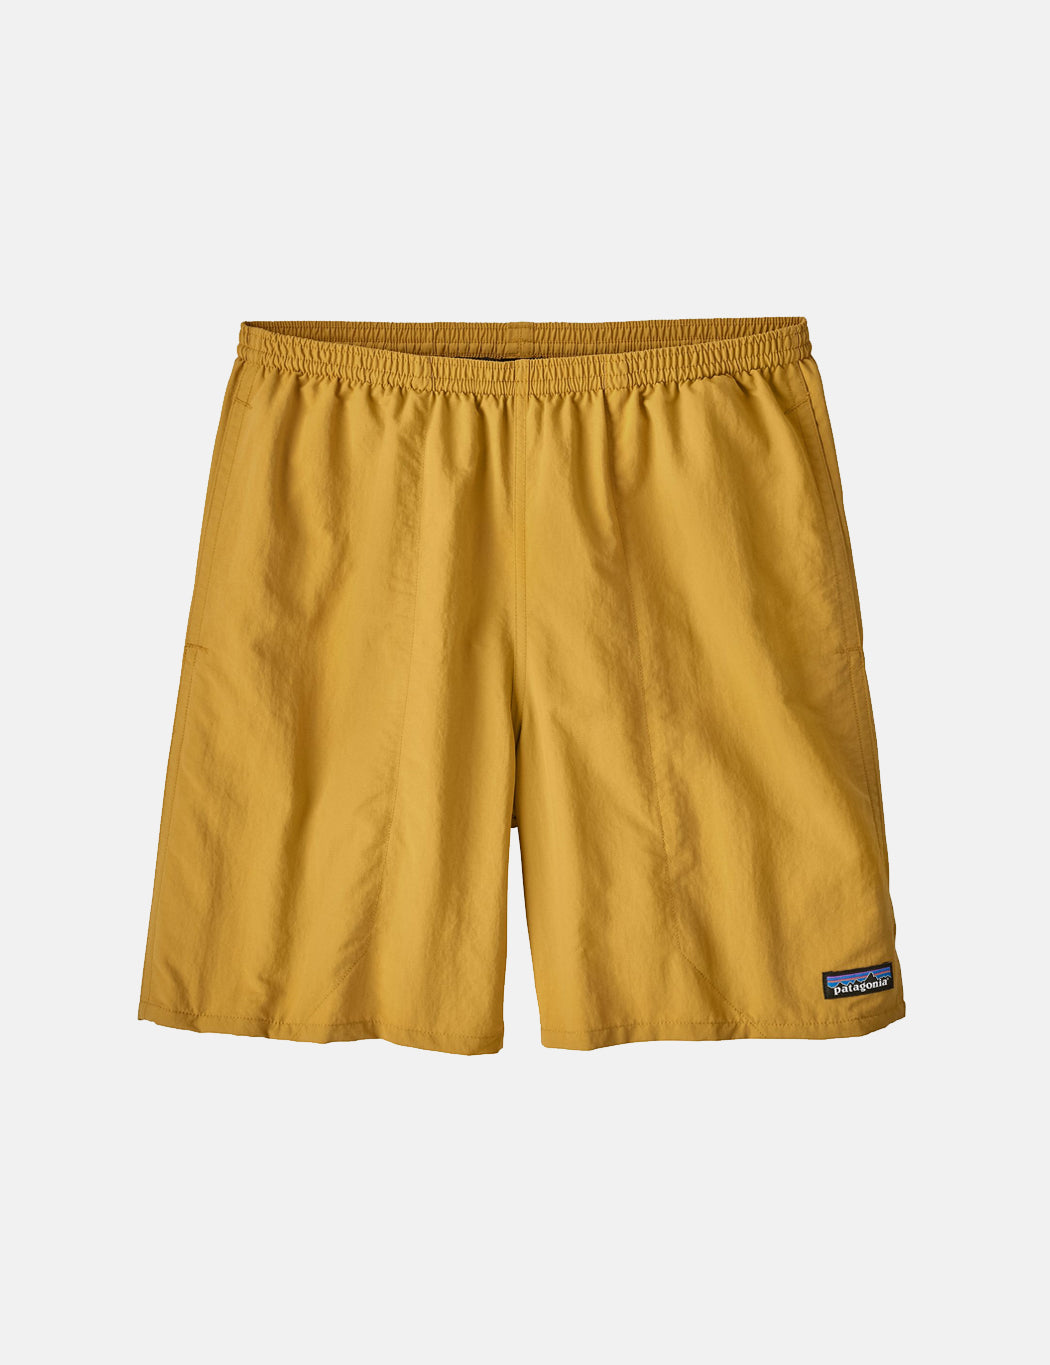 "Patagonia Baggies Longs Shorts (7"") - Yurt Yellow"